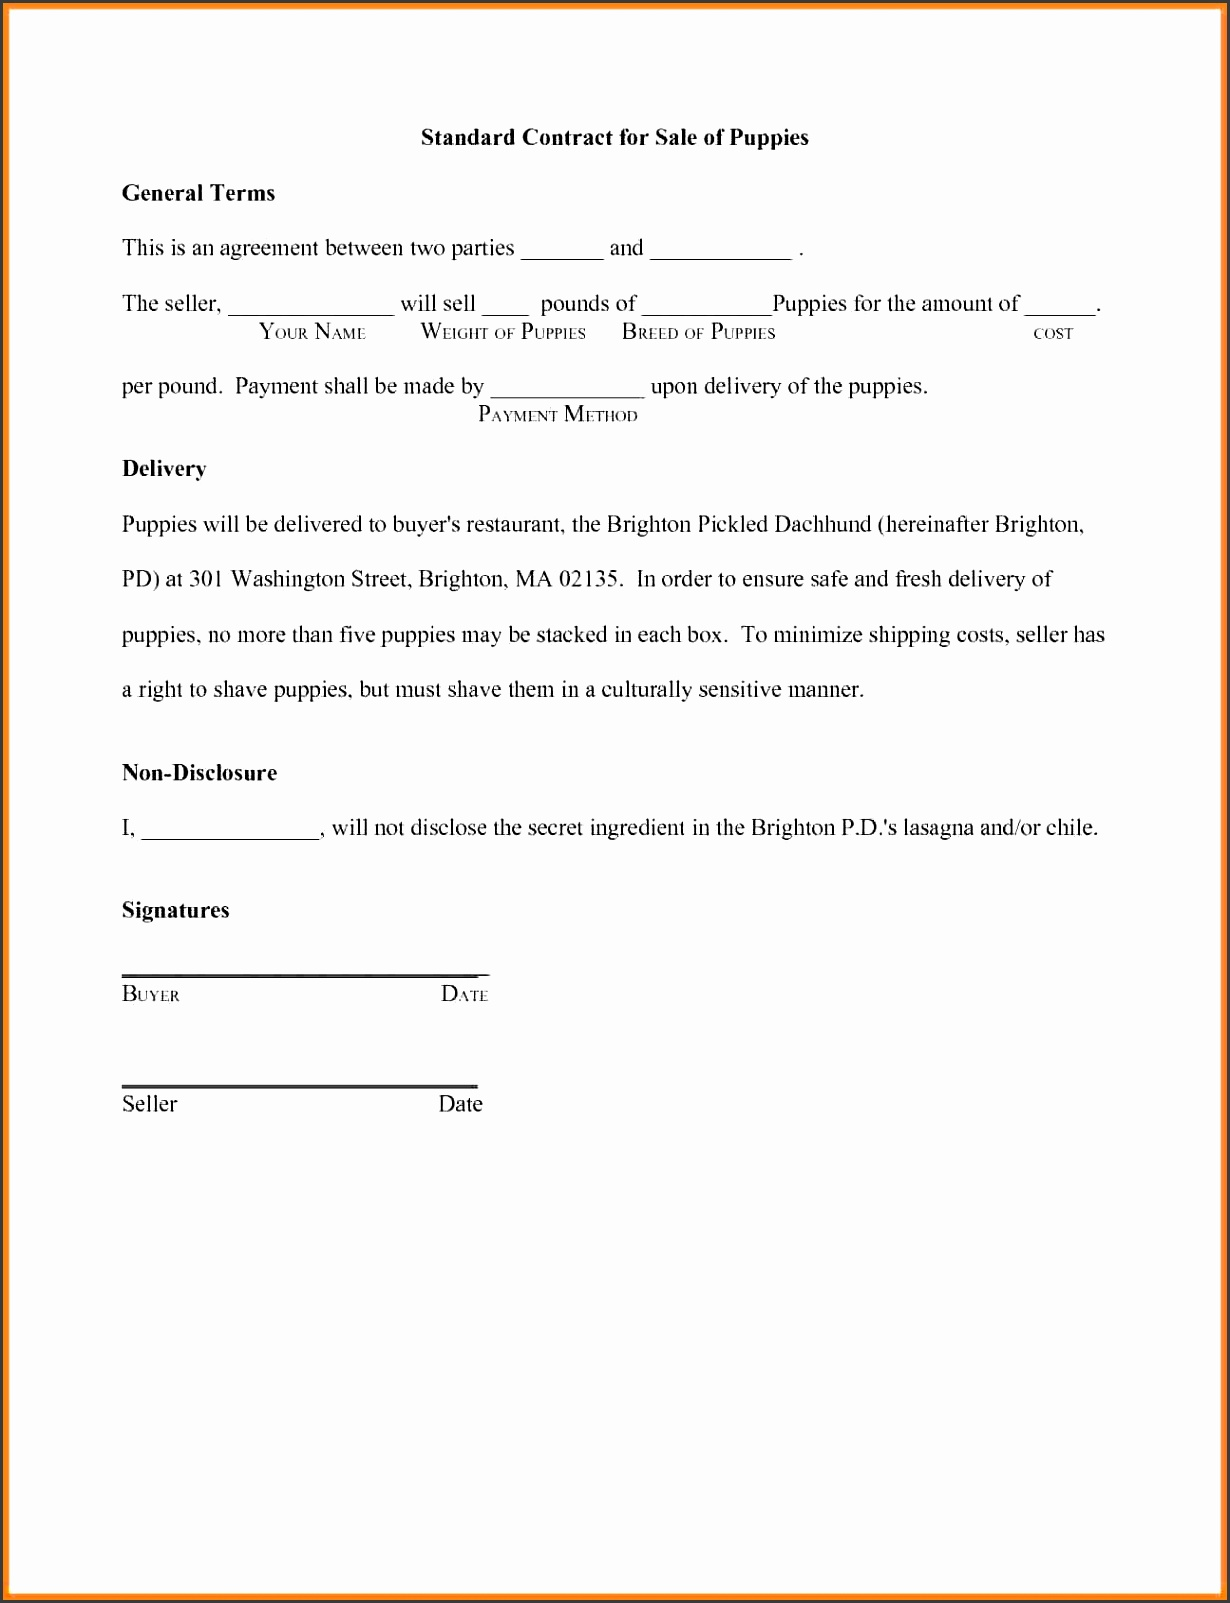 template doc simple partnership 791x1024 business investment contract sample of agreement between two parties for business book report examples